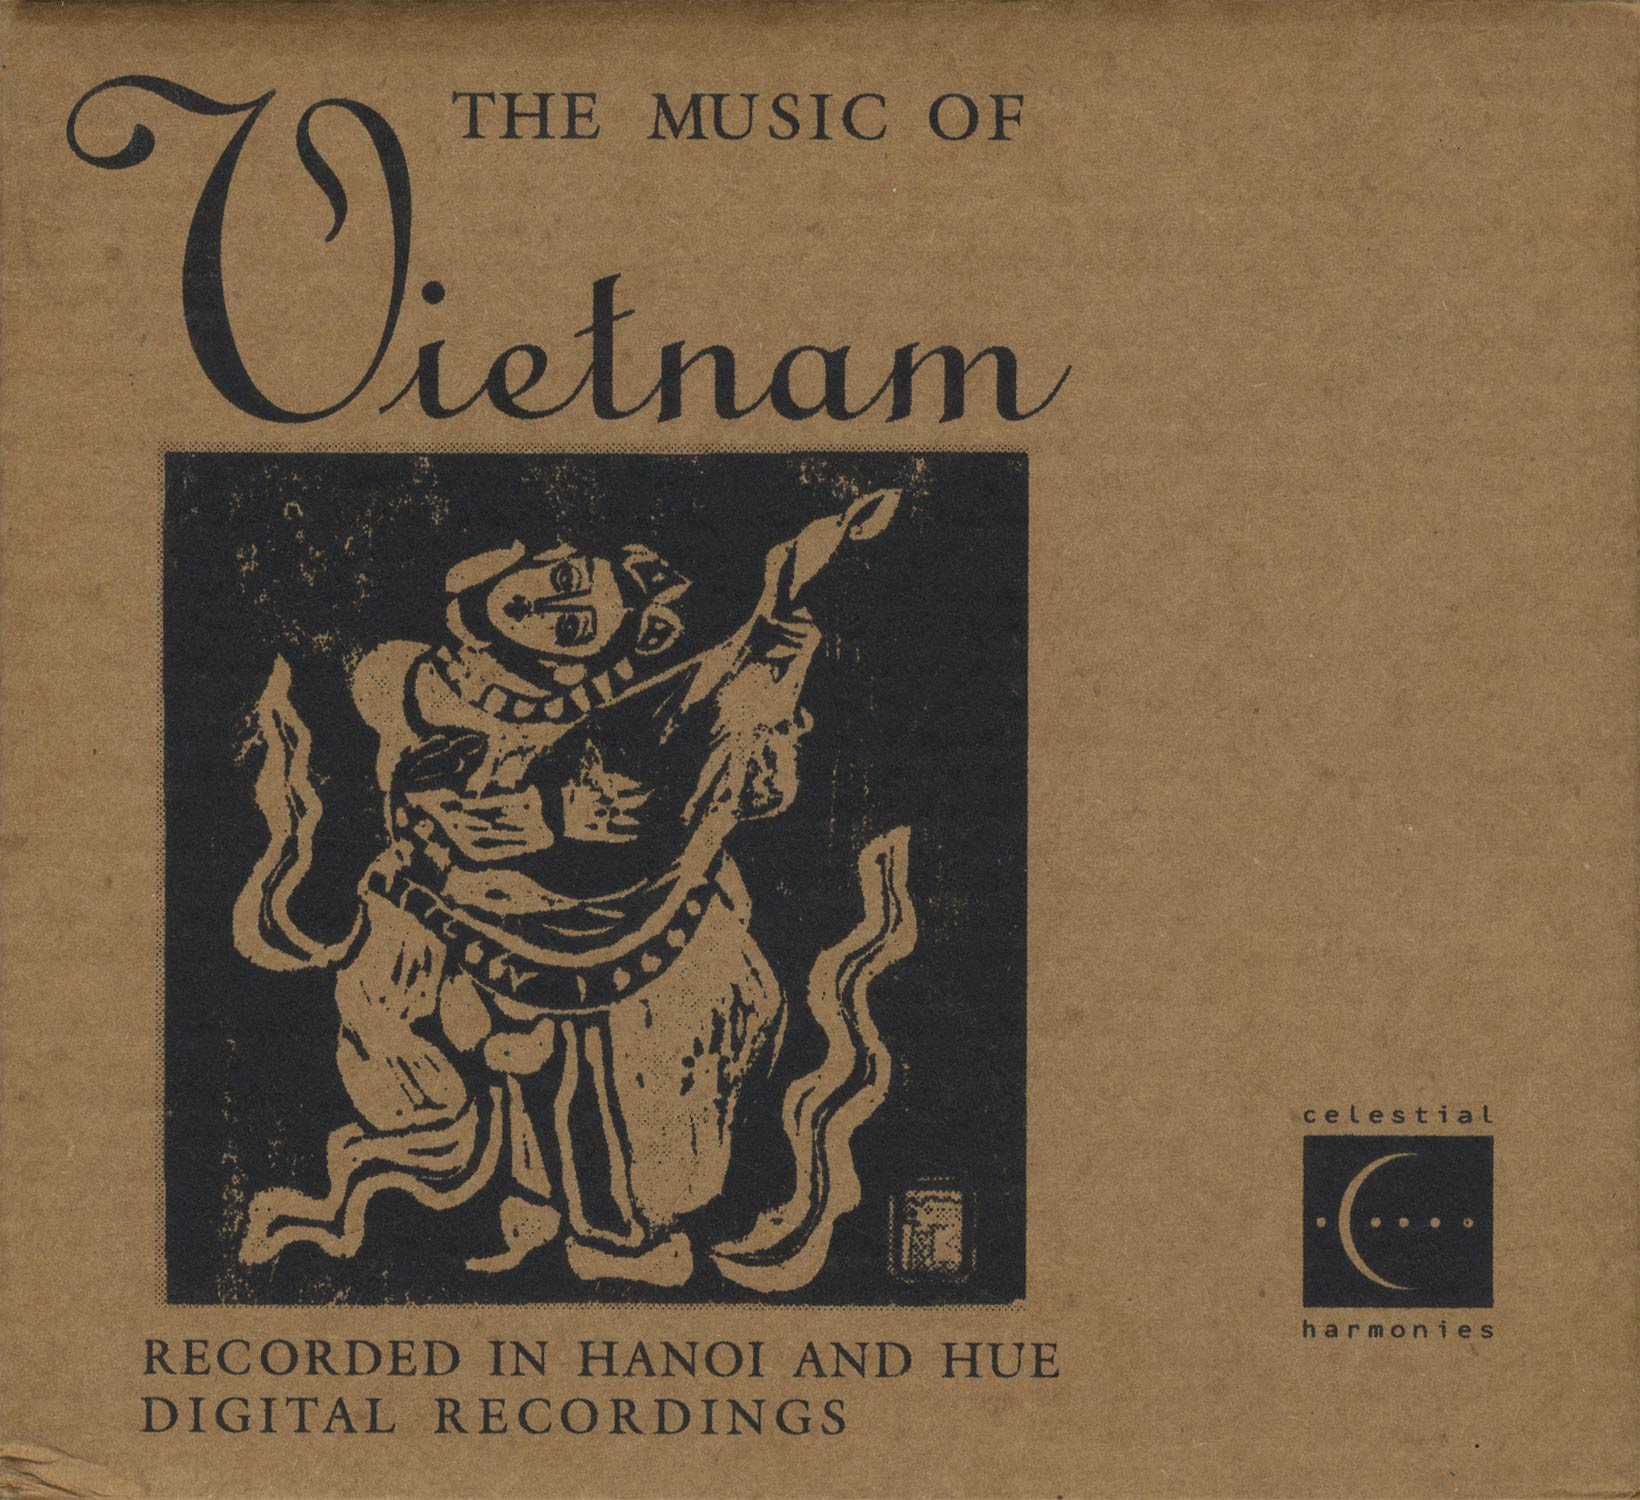 The Music of Vietnam 3 CD Boxed Set[image1]